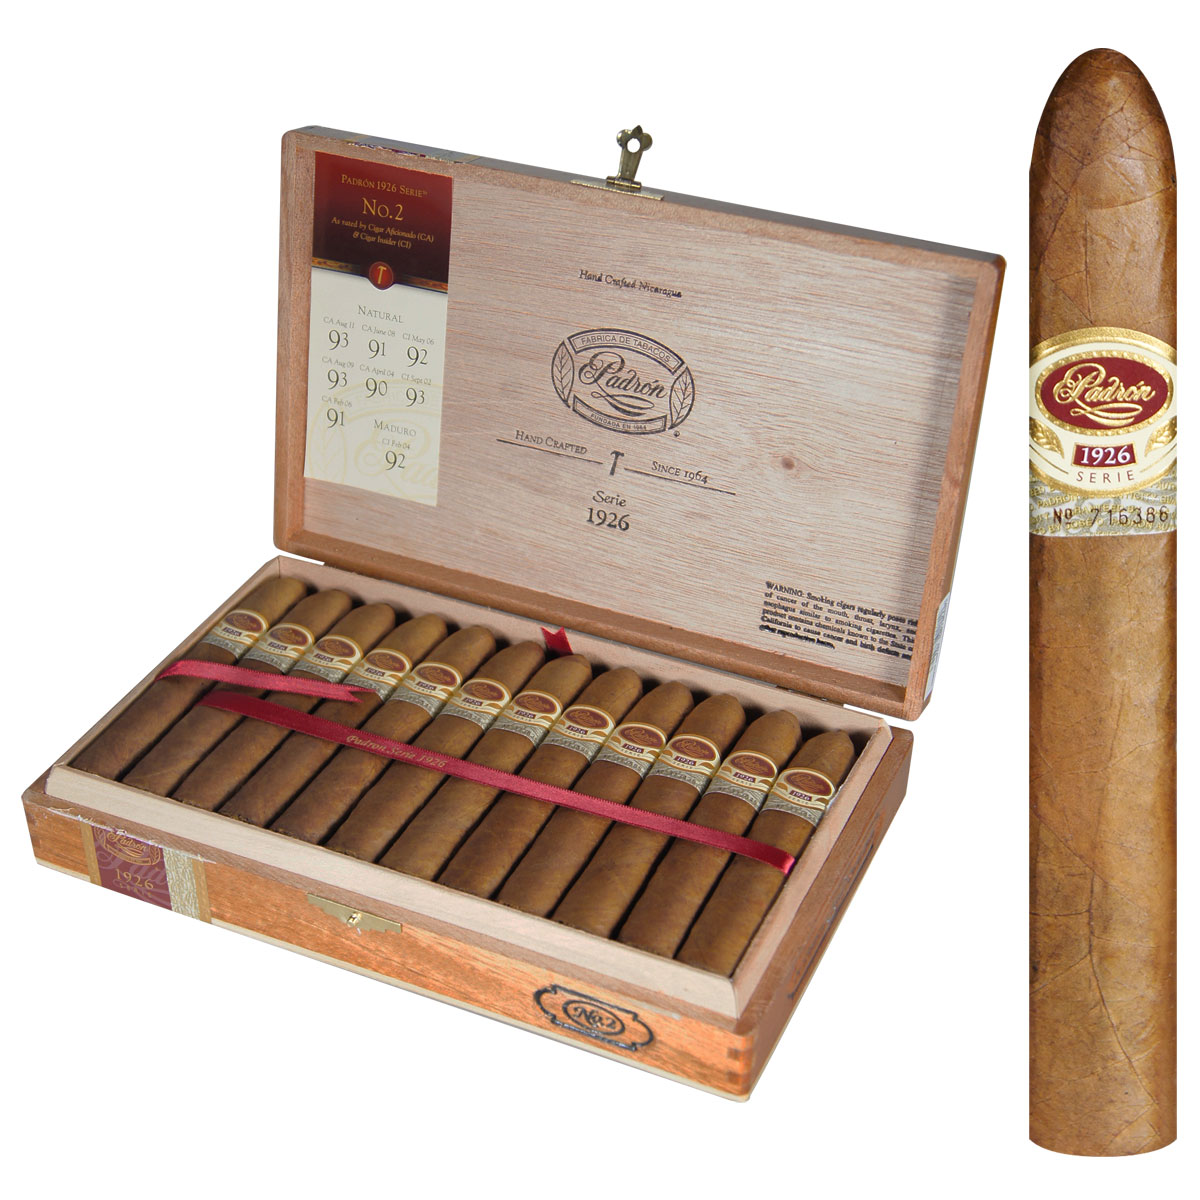 Padron Aniversario 1926 No. 2, Four Pack